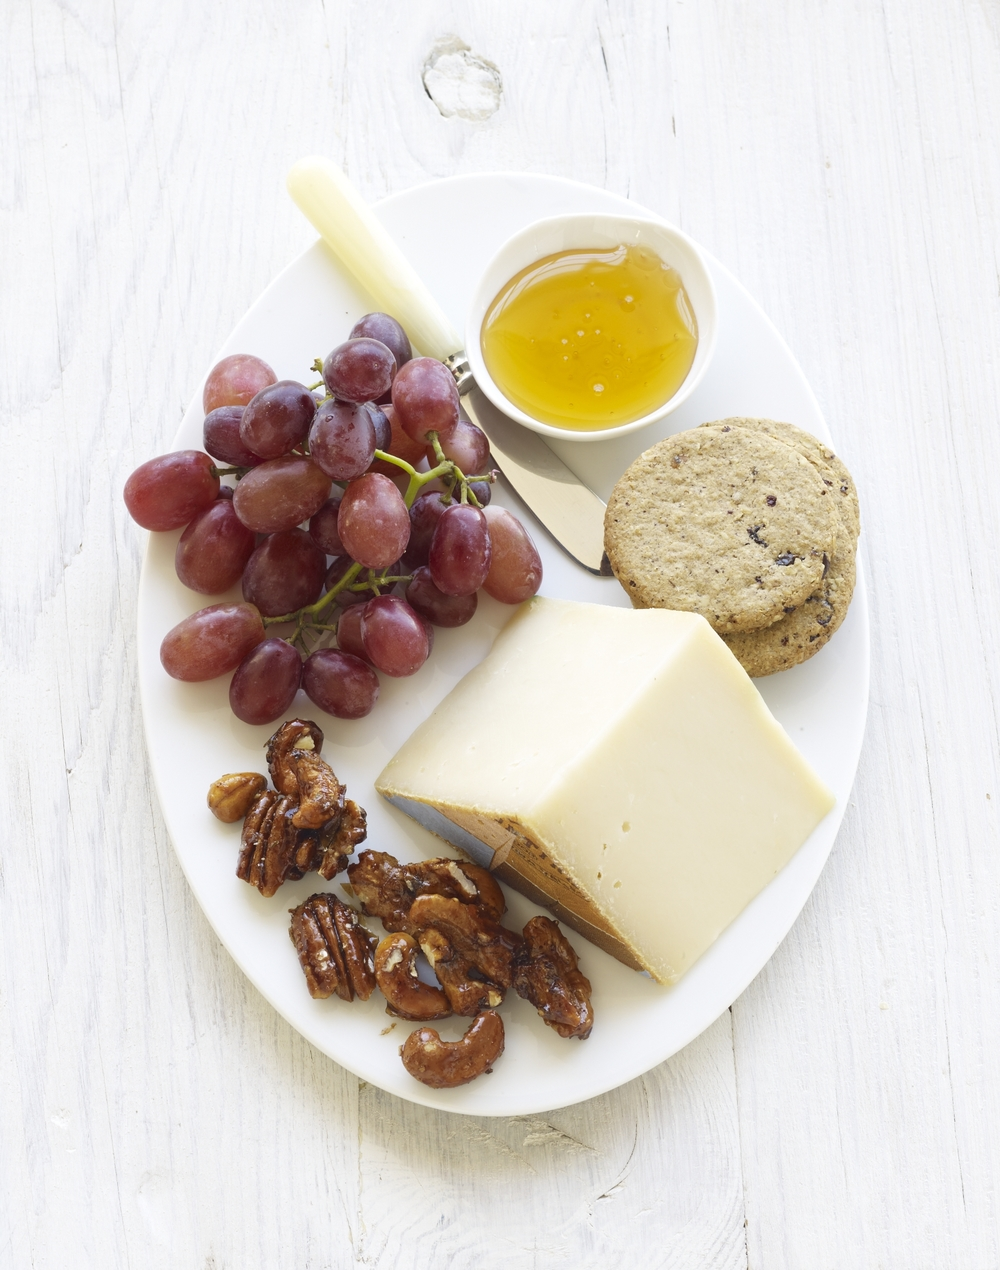 CHEESE_FRUIT_PLATE_010.jpg